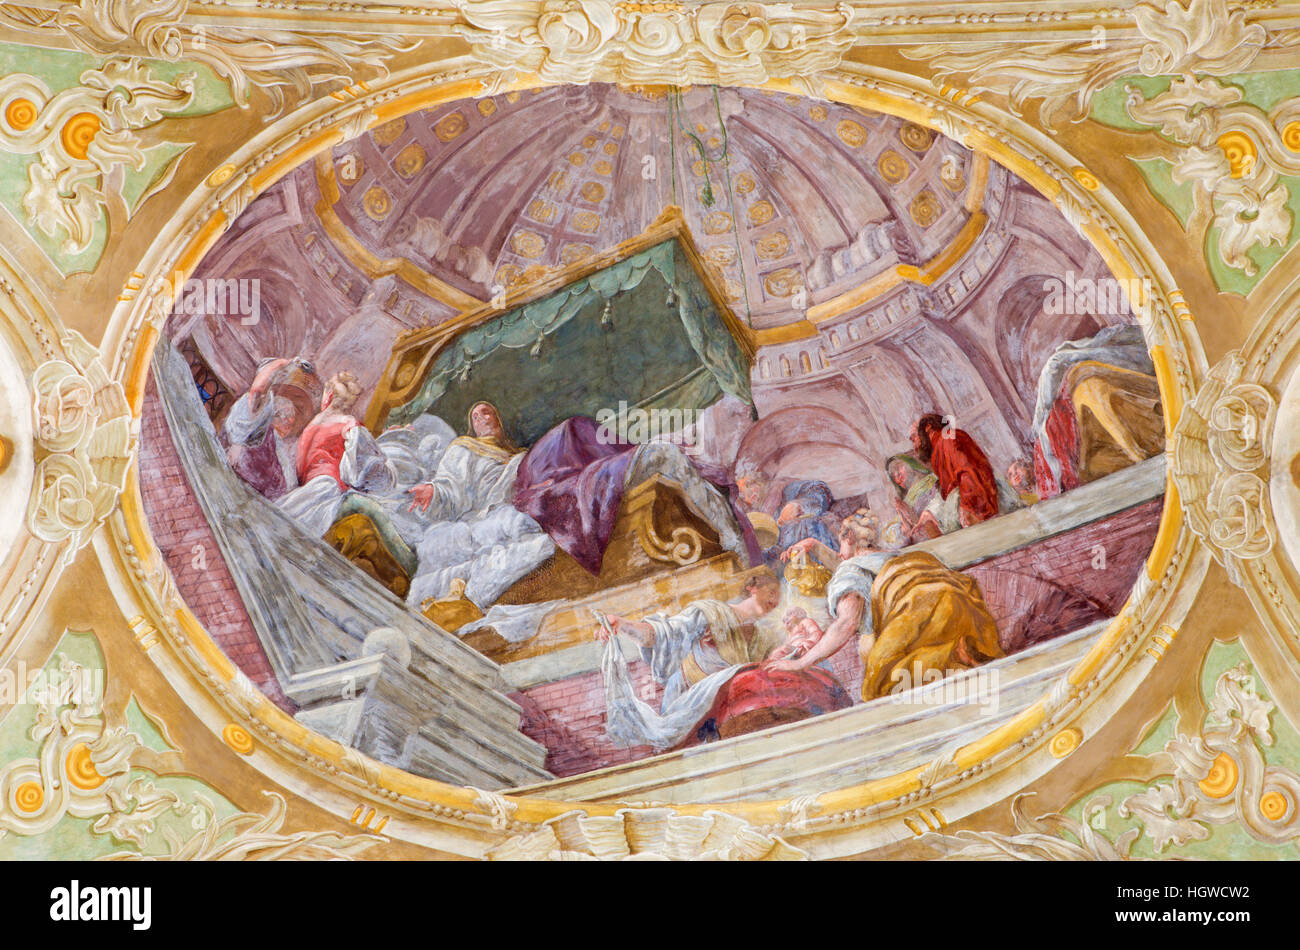 VIENNA, AUSTRIA - DECEMBER 19, 2016: The ceiling fresco of The Birth of Virgin Mary in church Mariahilfer Kirche - Stock Image